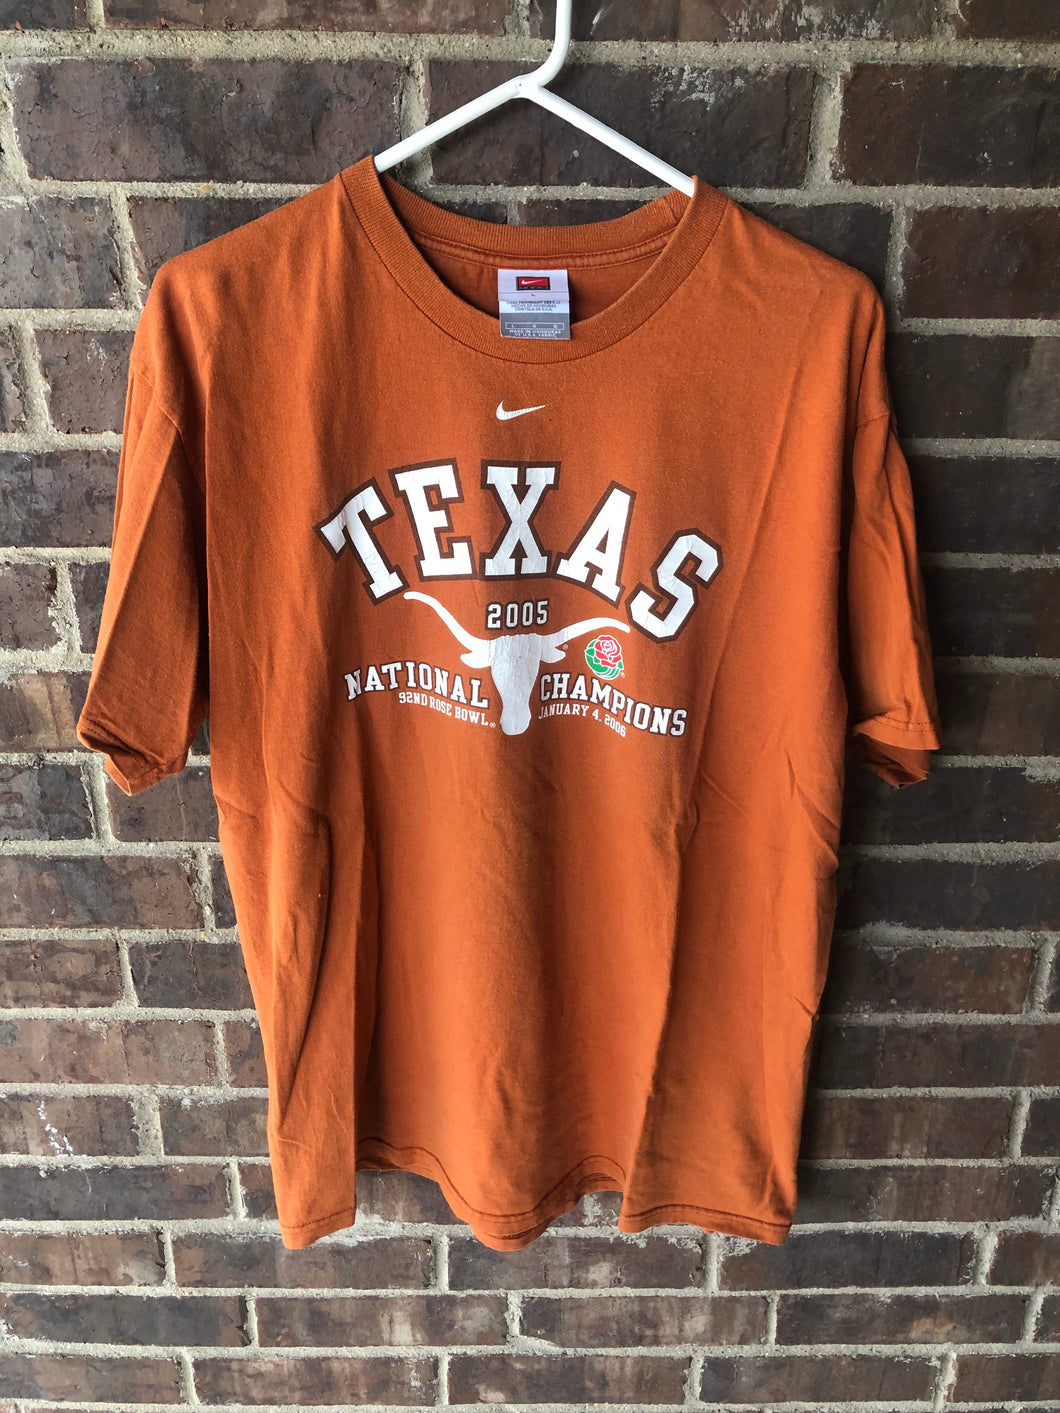 05' Texas Longhorns Ntnl Champs Tee